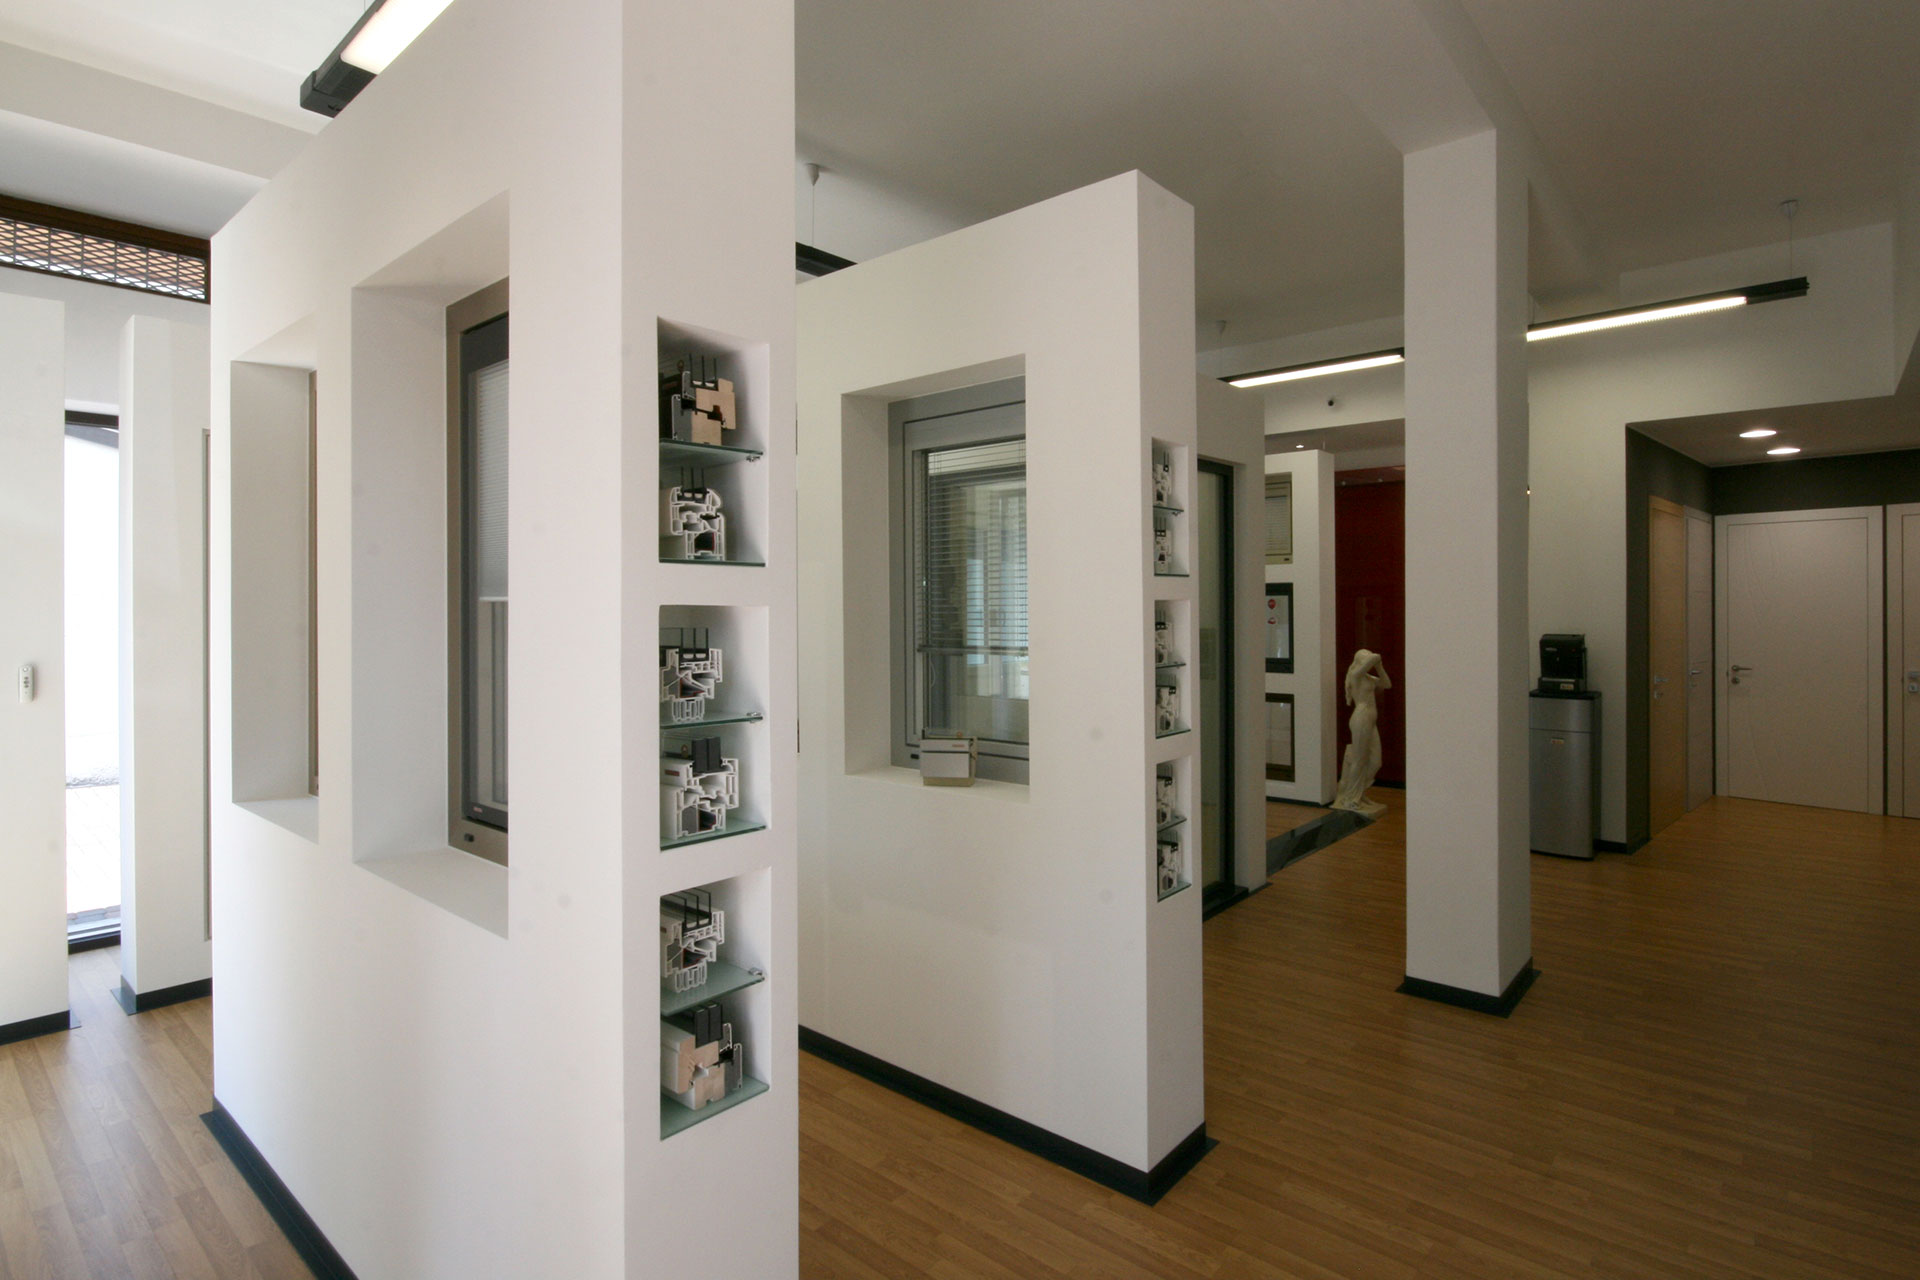 Showroom Albo infissi - Internorm udine